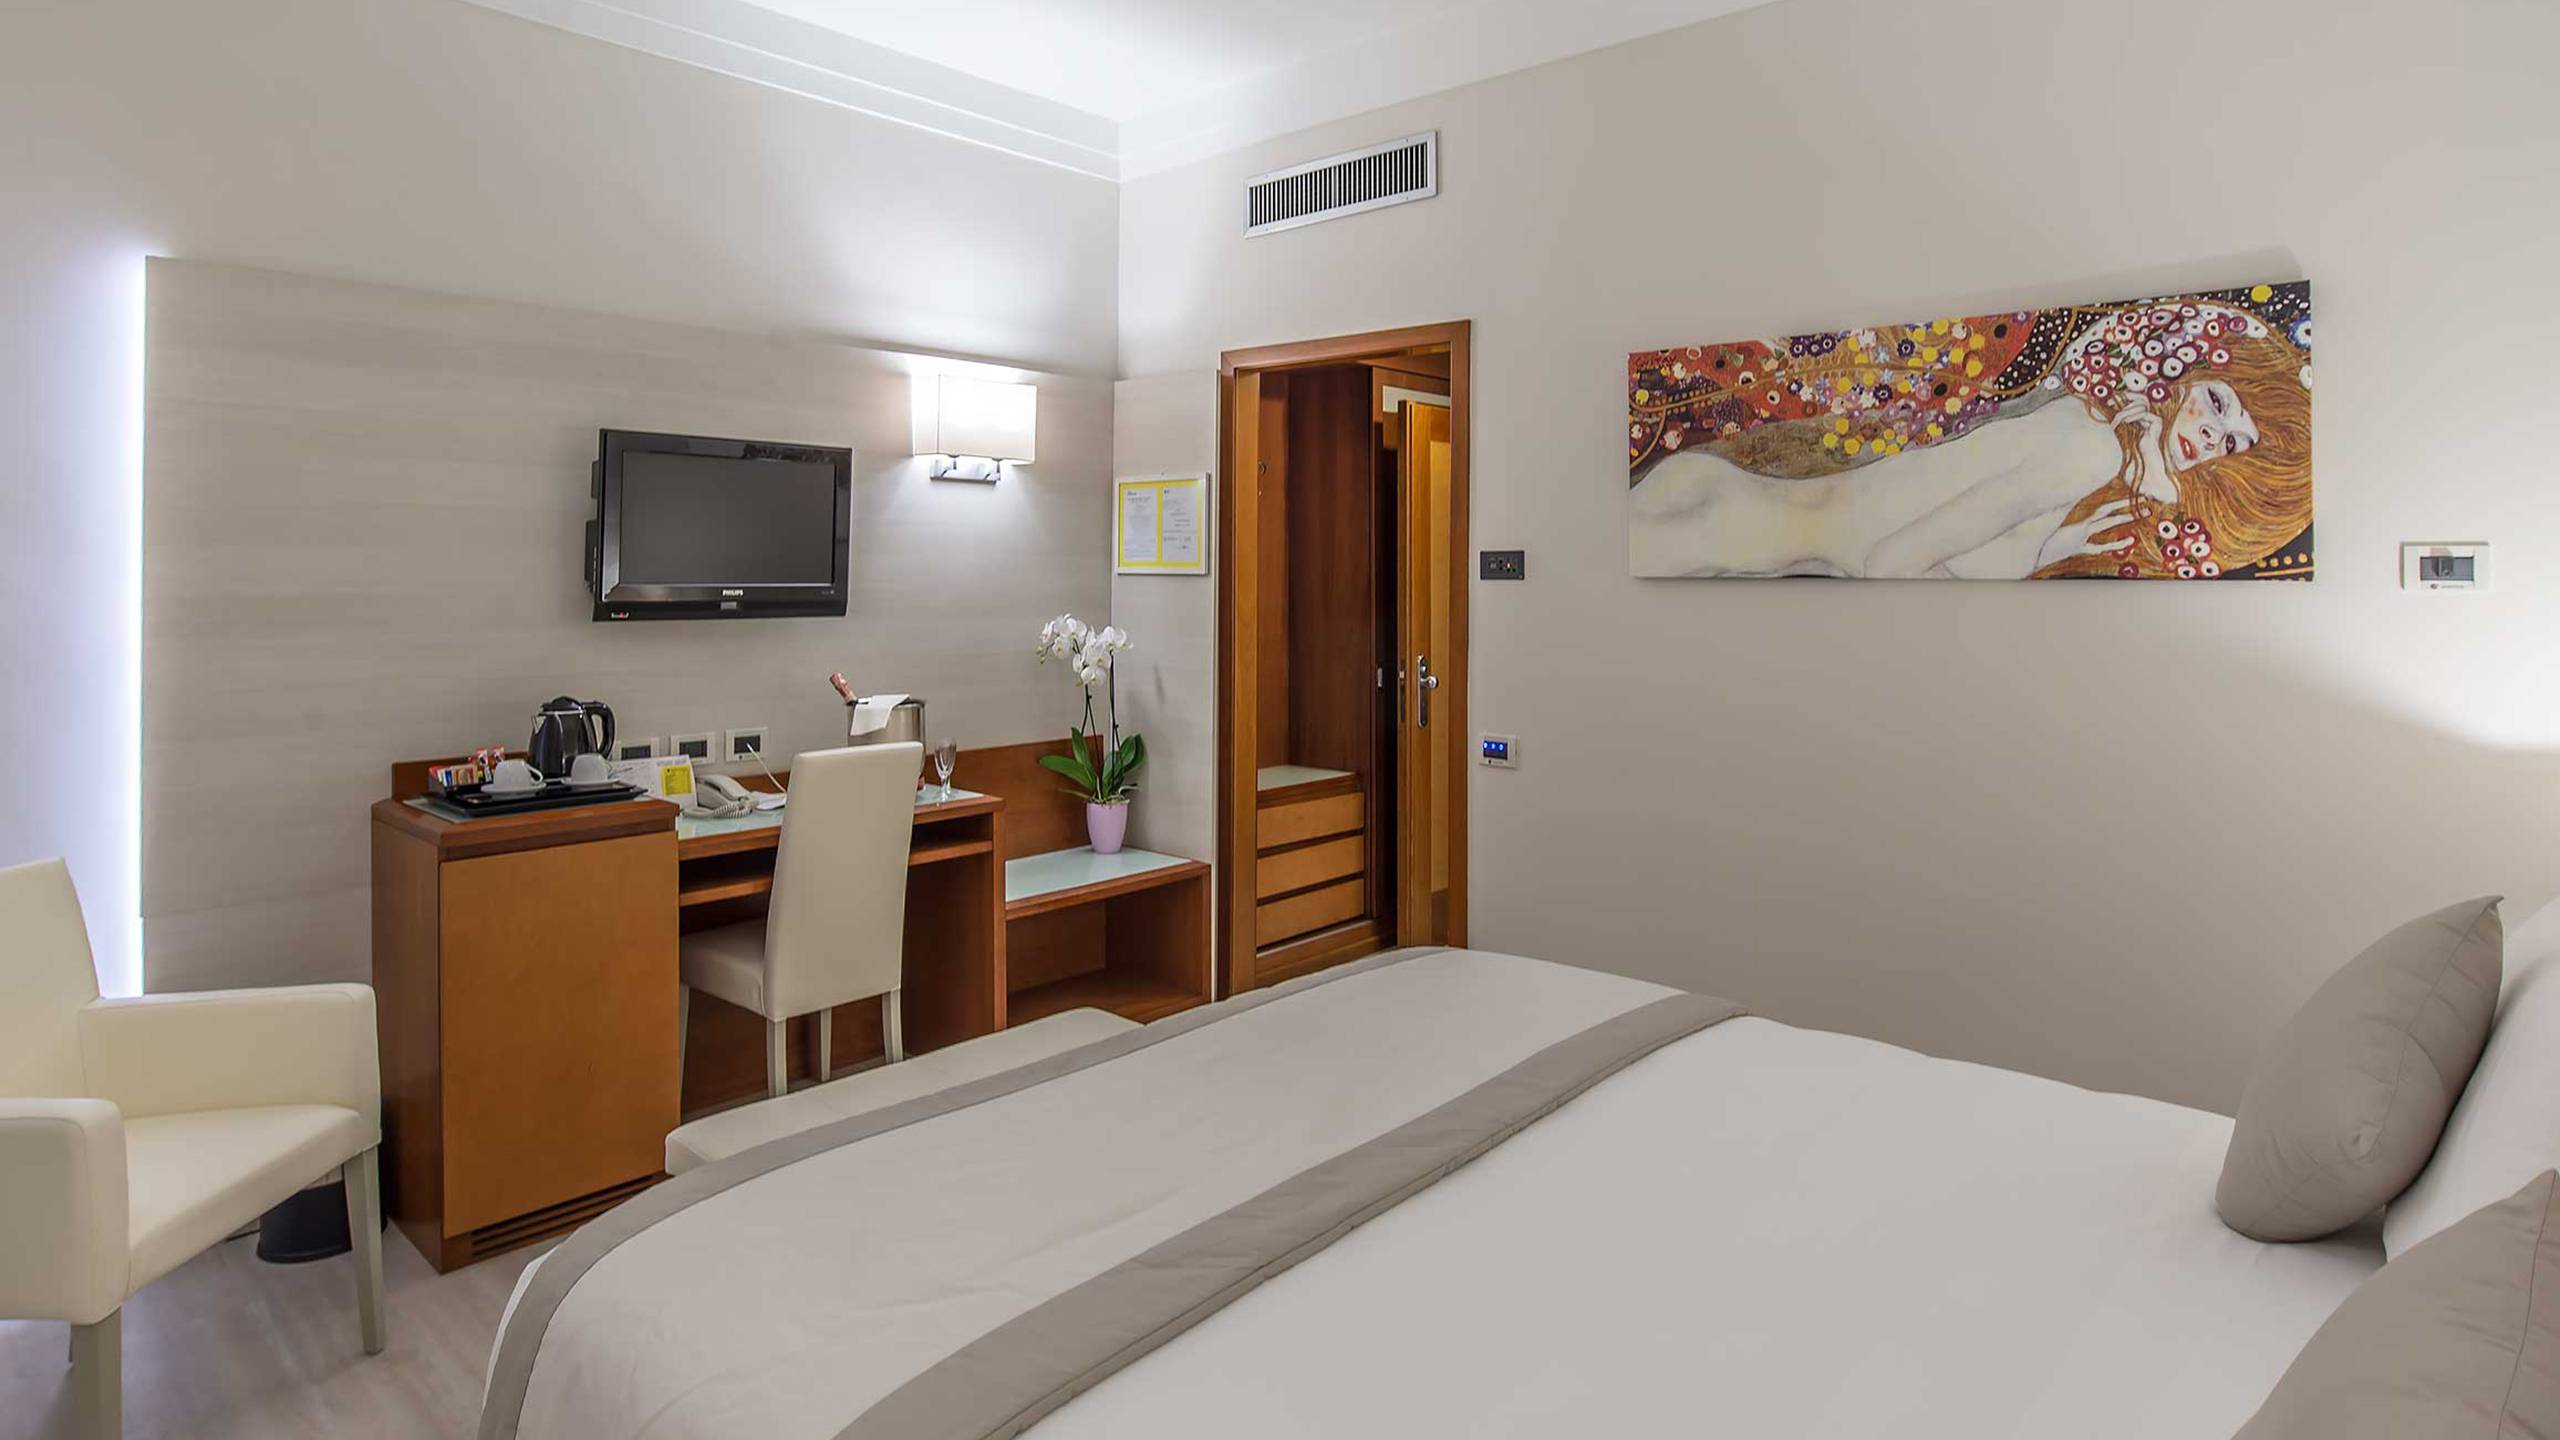 Hotel-La-Giocca-Roma-double-superior-room-16